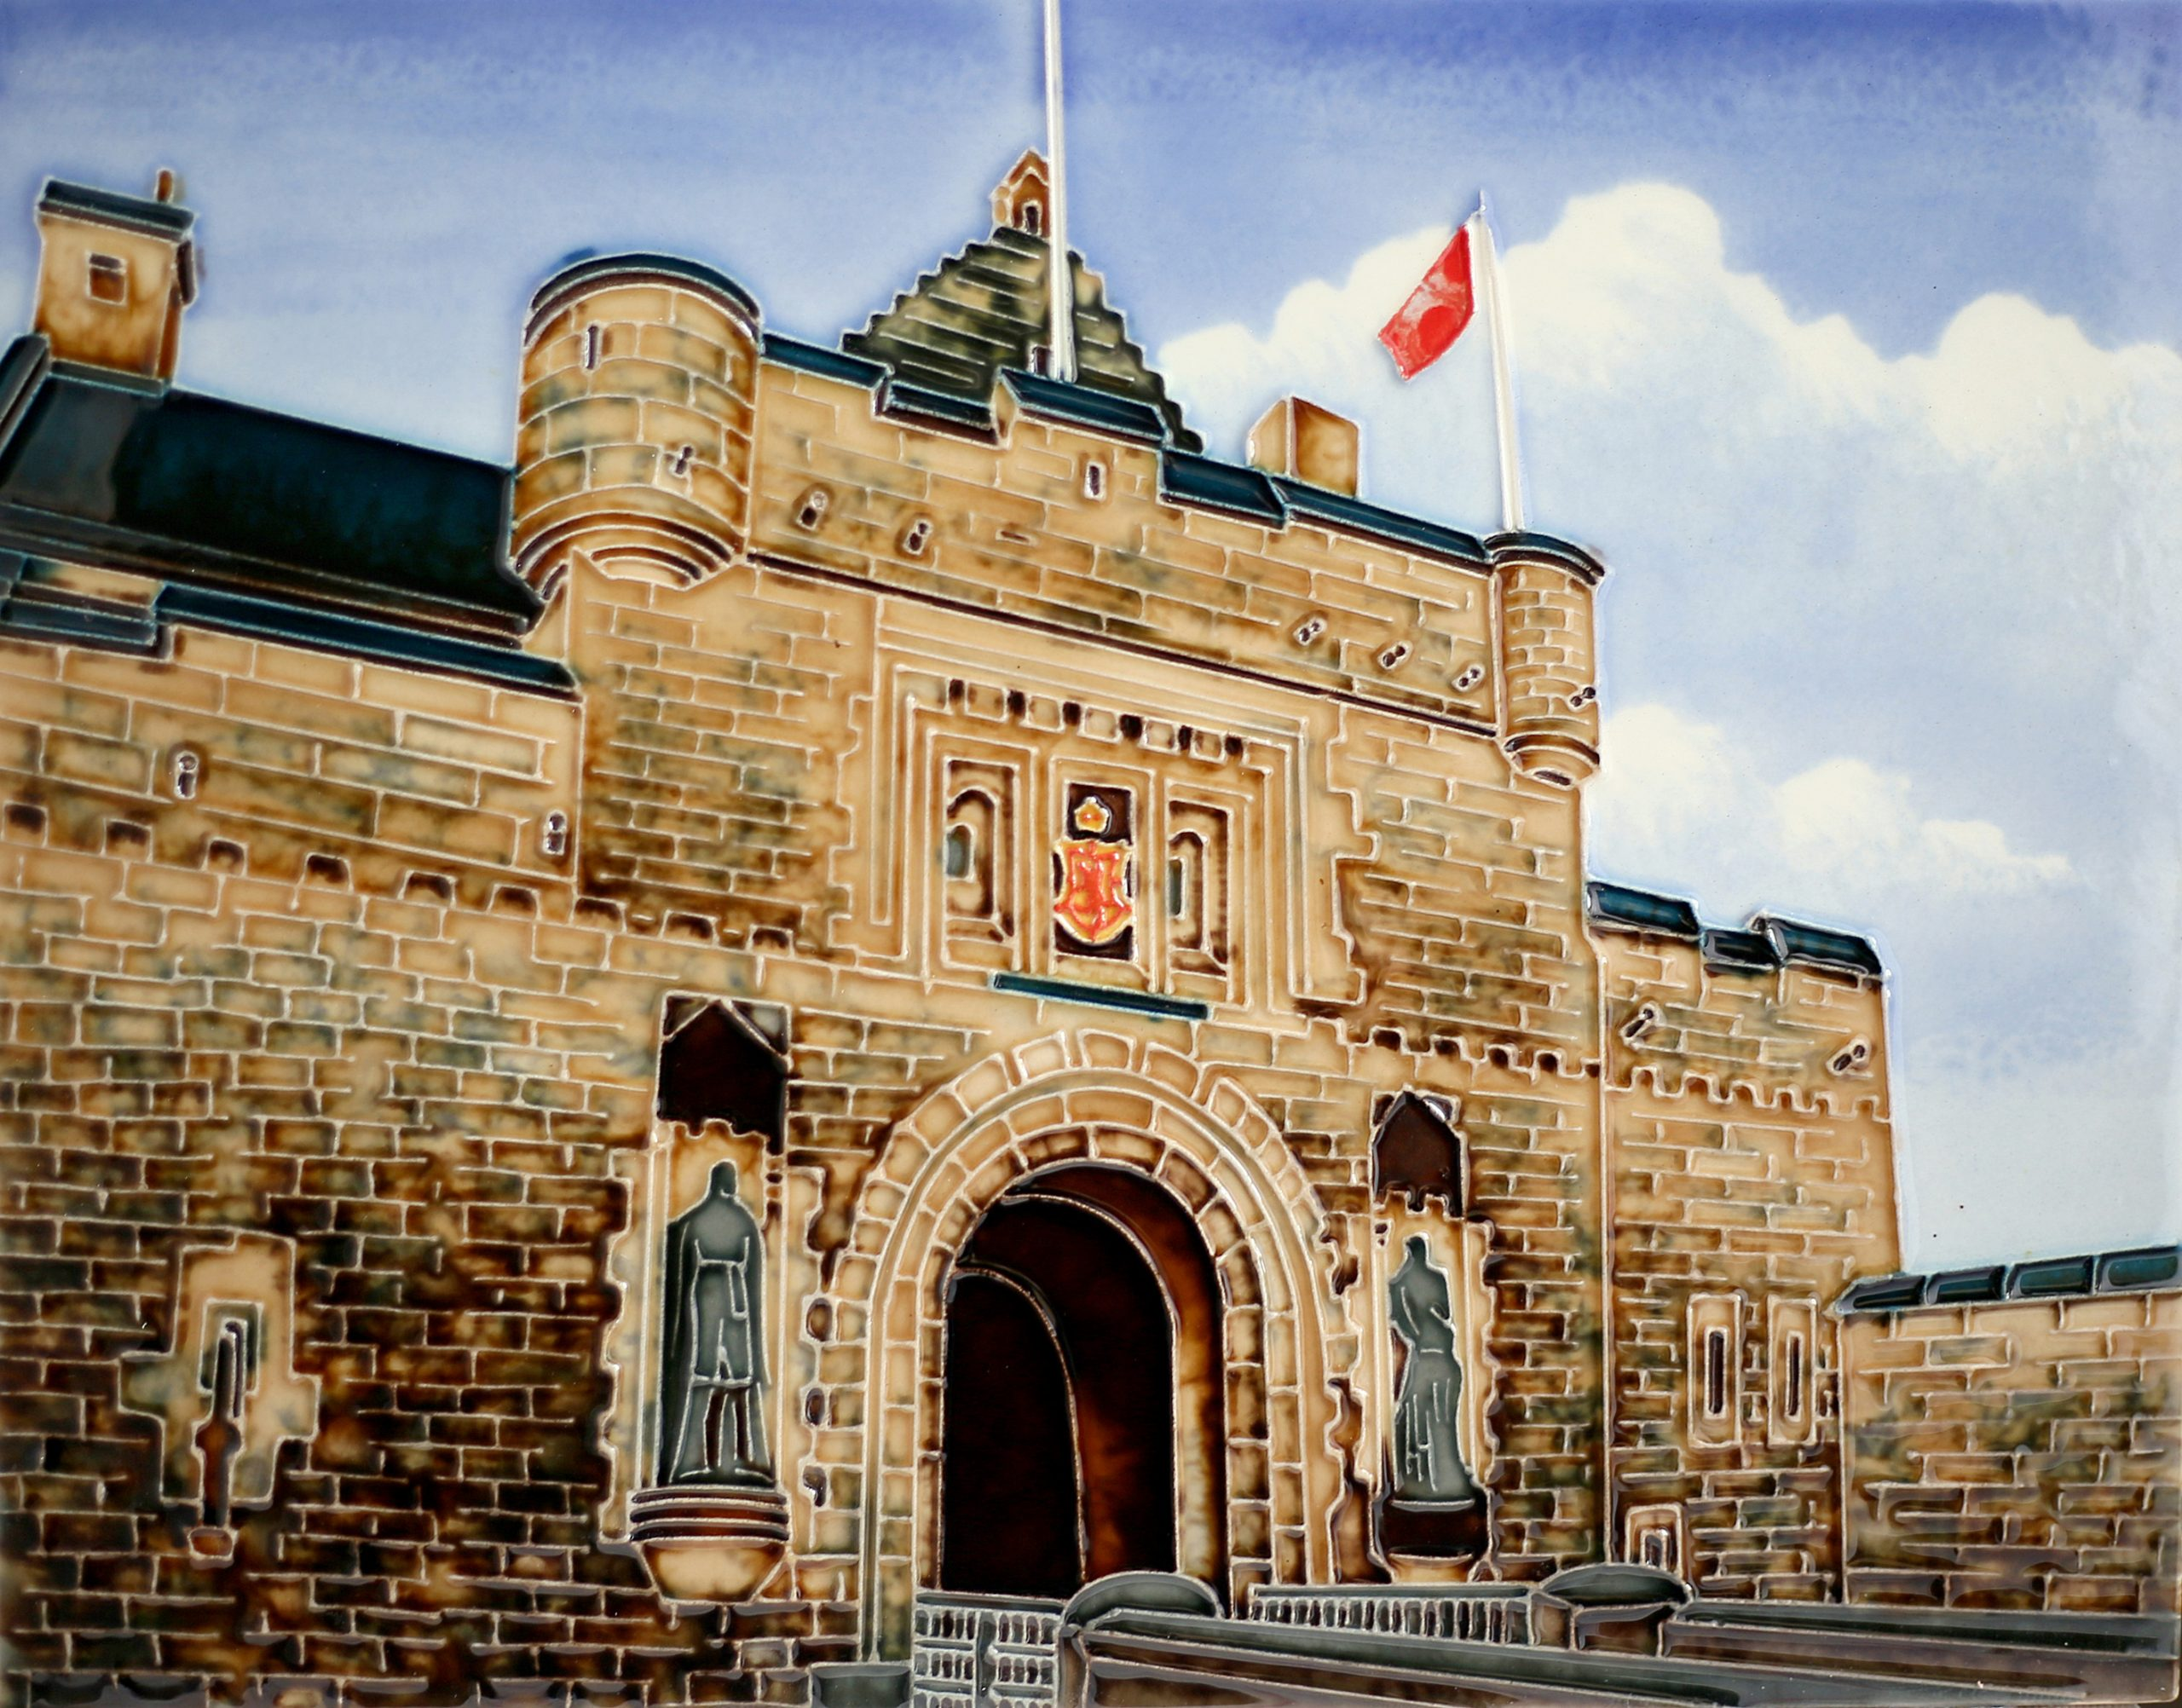 Edinburgh Castle Gate 11×14 (191092)